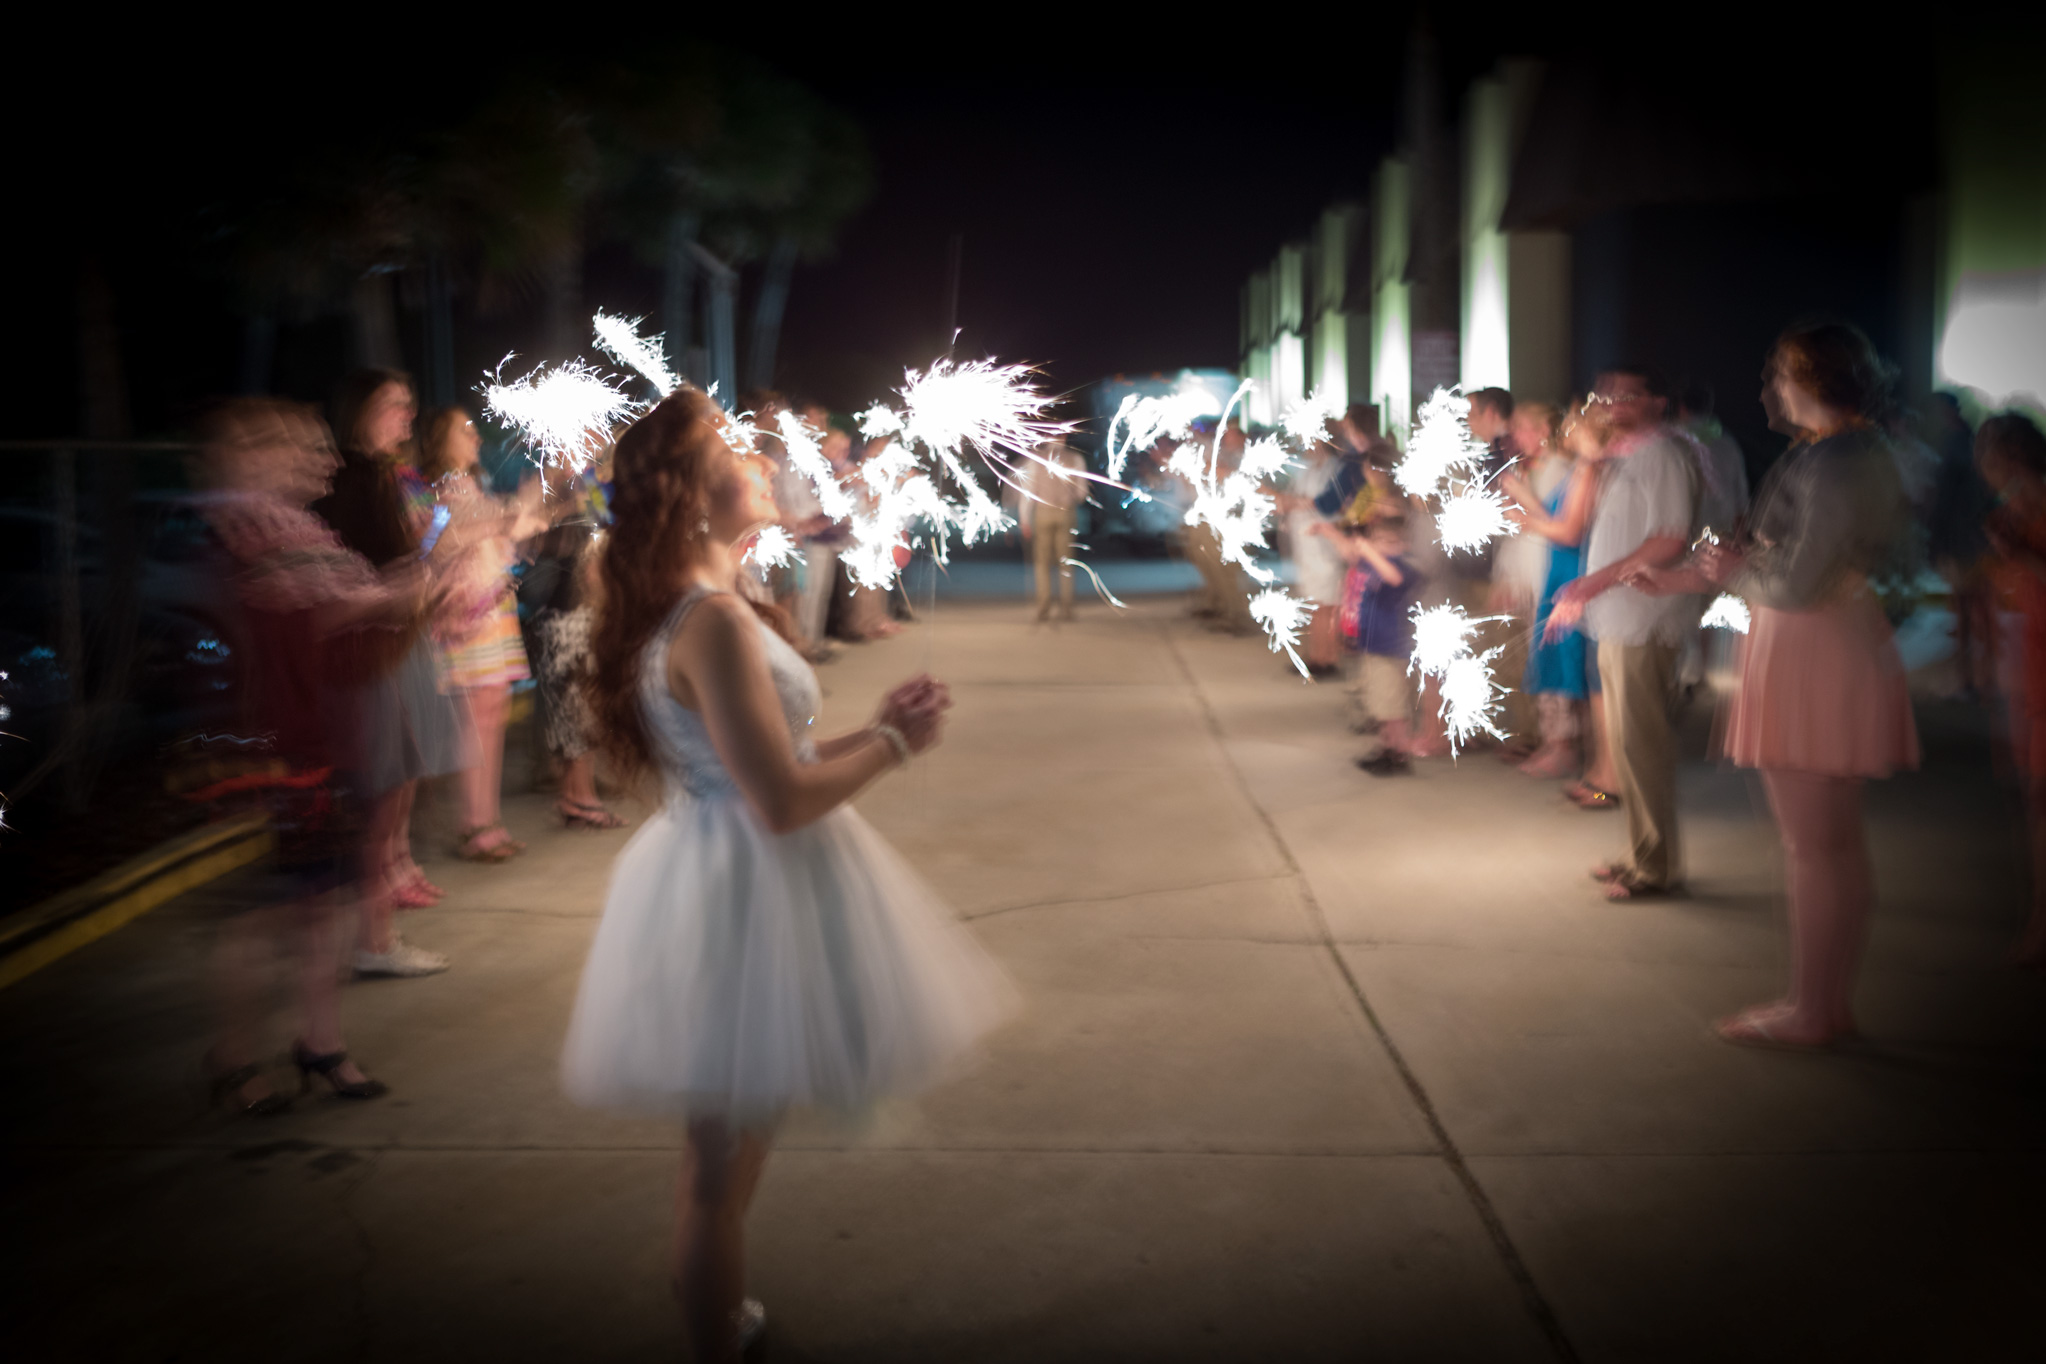 wedding_last_dance_love_sparkler_1.jpg